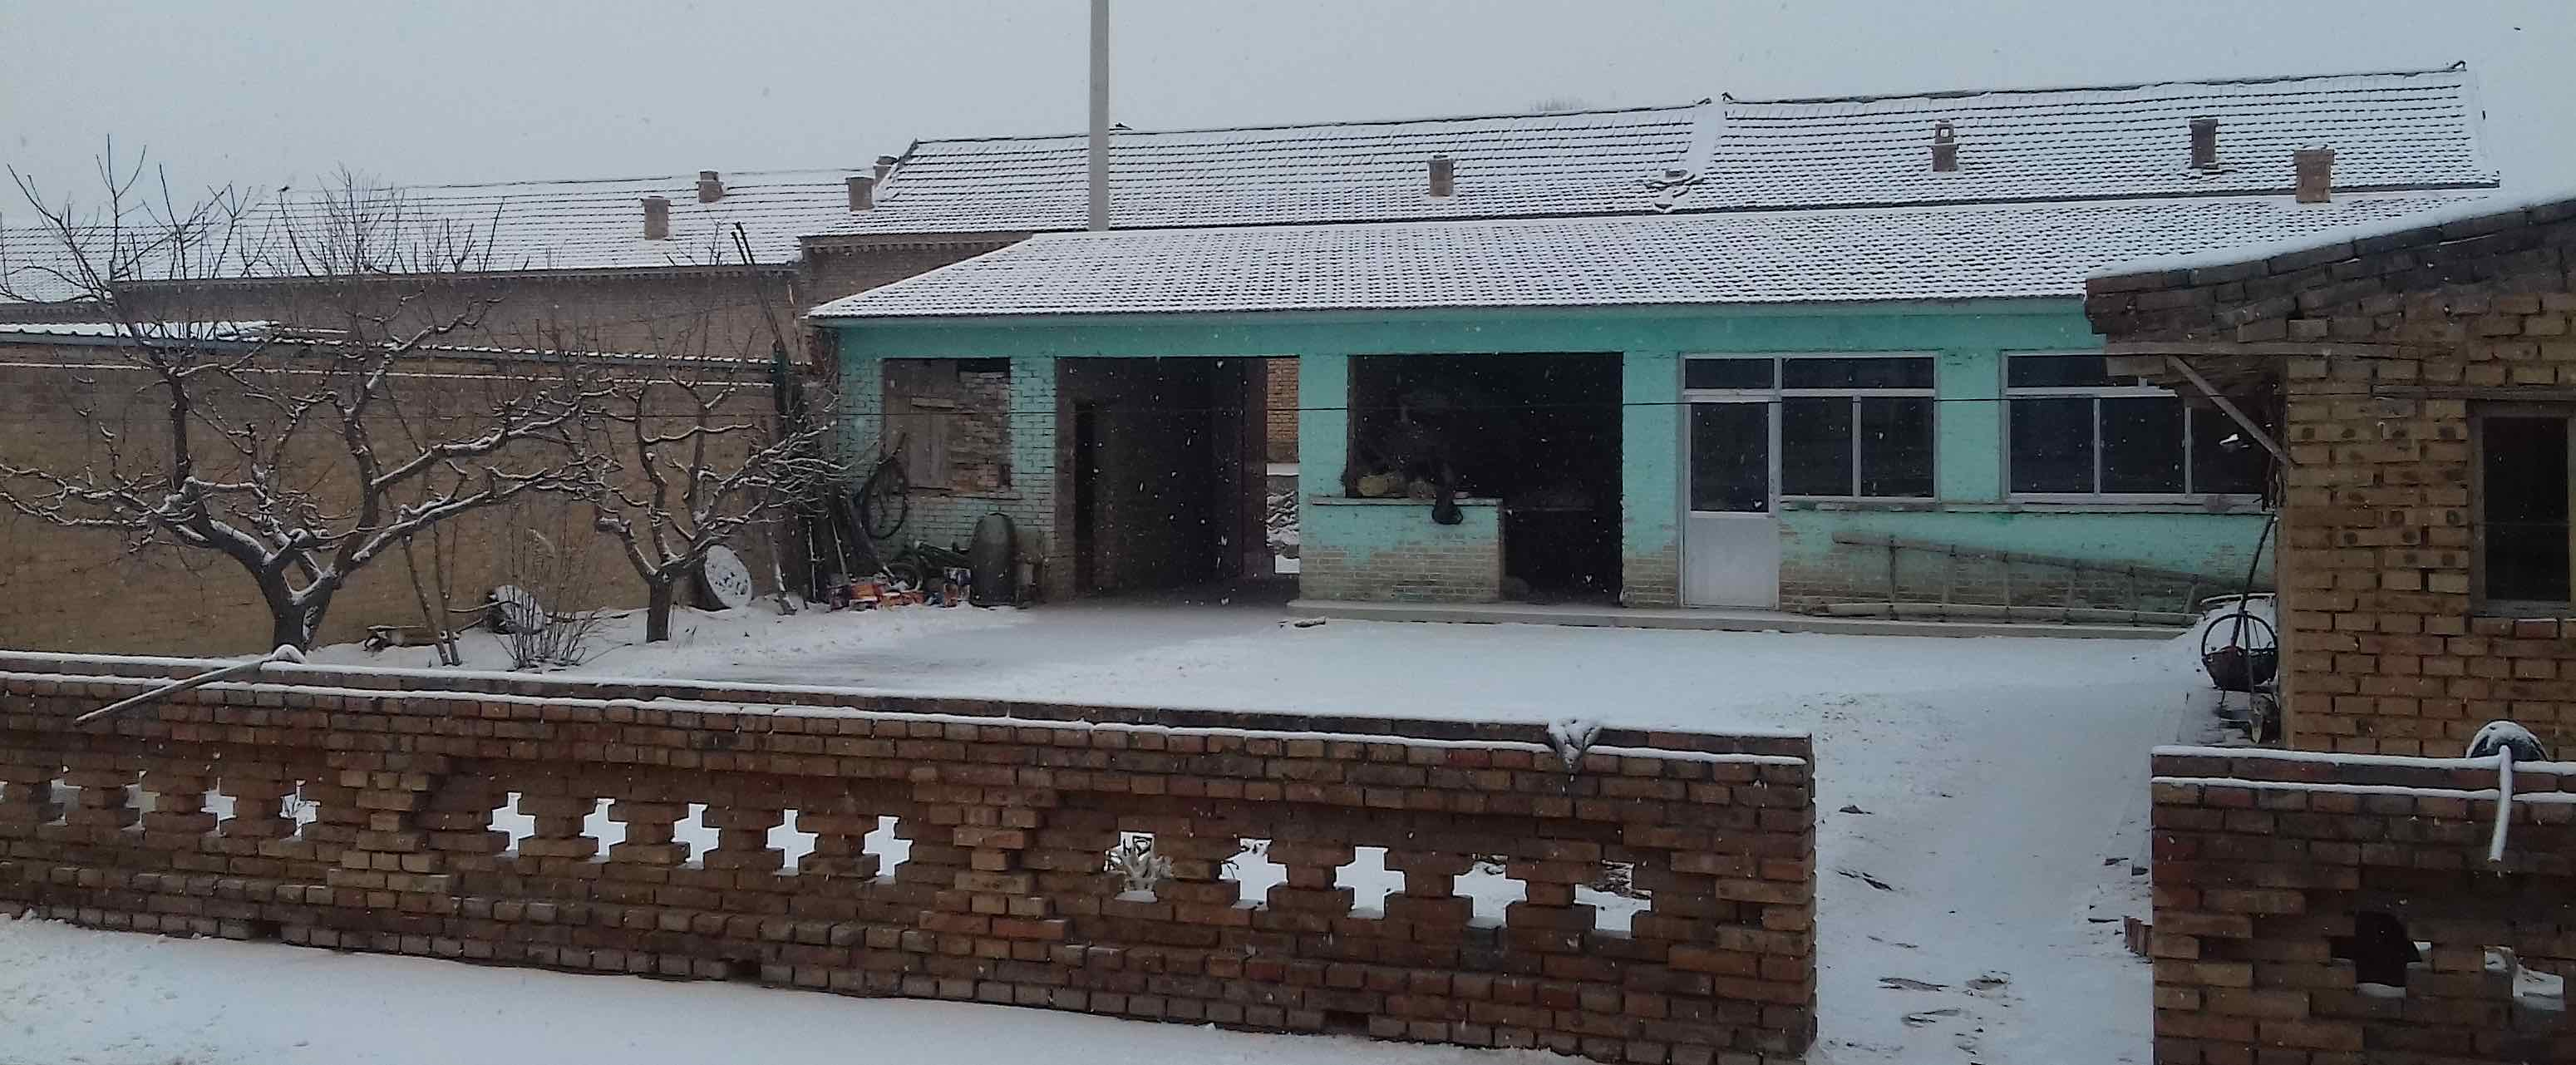 courtyard in snow